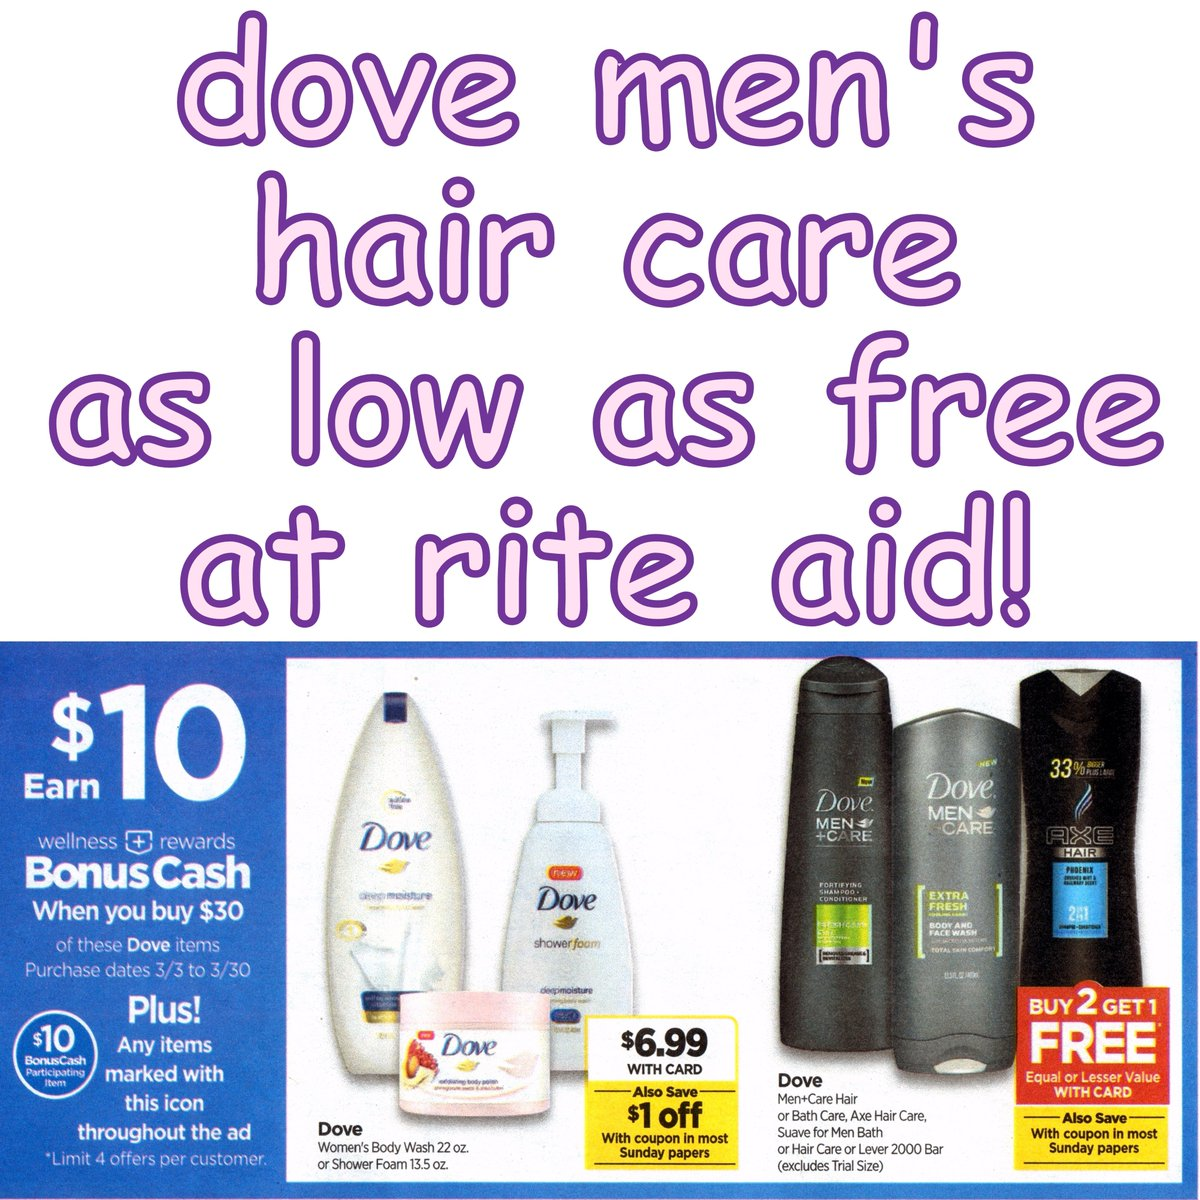 dove men+care hair care as low as free at rite aid! 🆓 details / coupons / rebates here:  http://www.iheartriteaid.com/2019/03/0317-0323.html#dove …  #freebies #riteaid #couponing #couponcommunity #deals